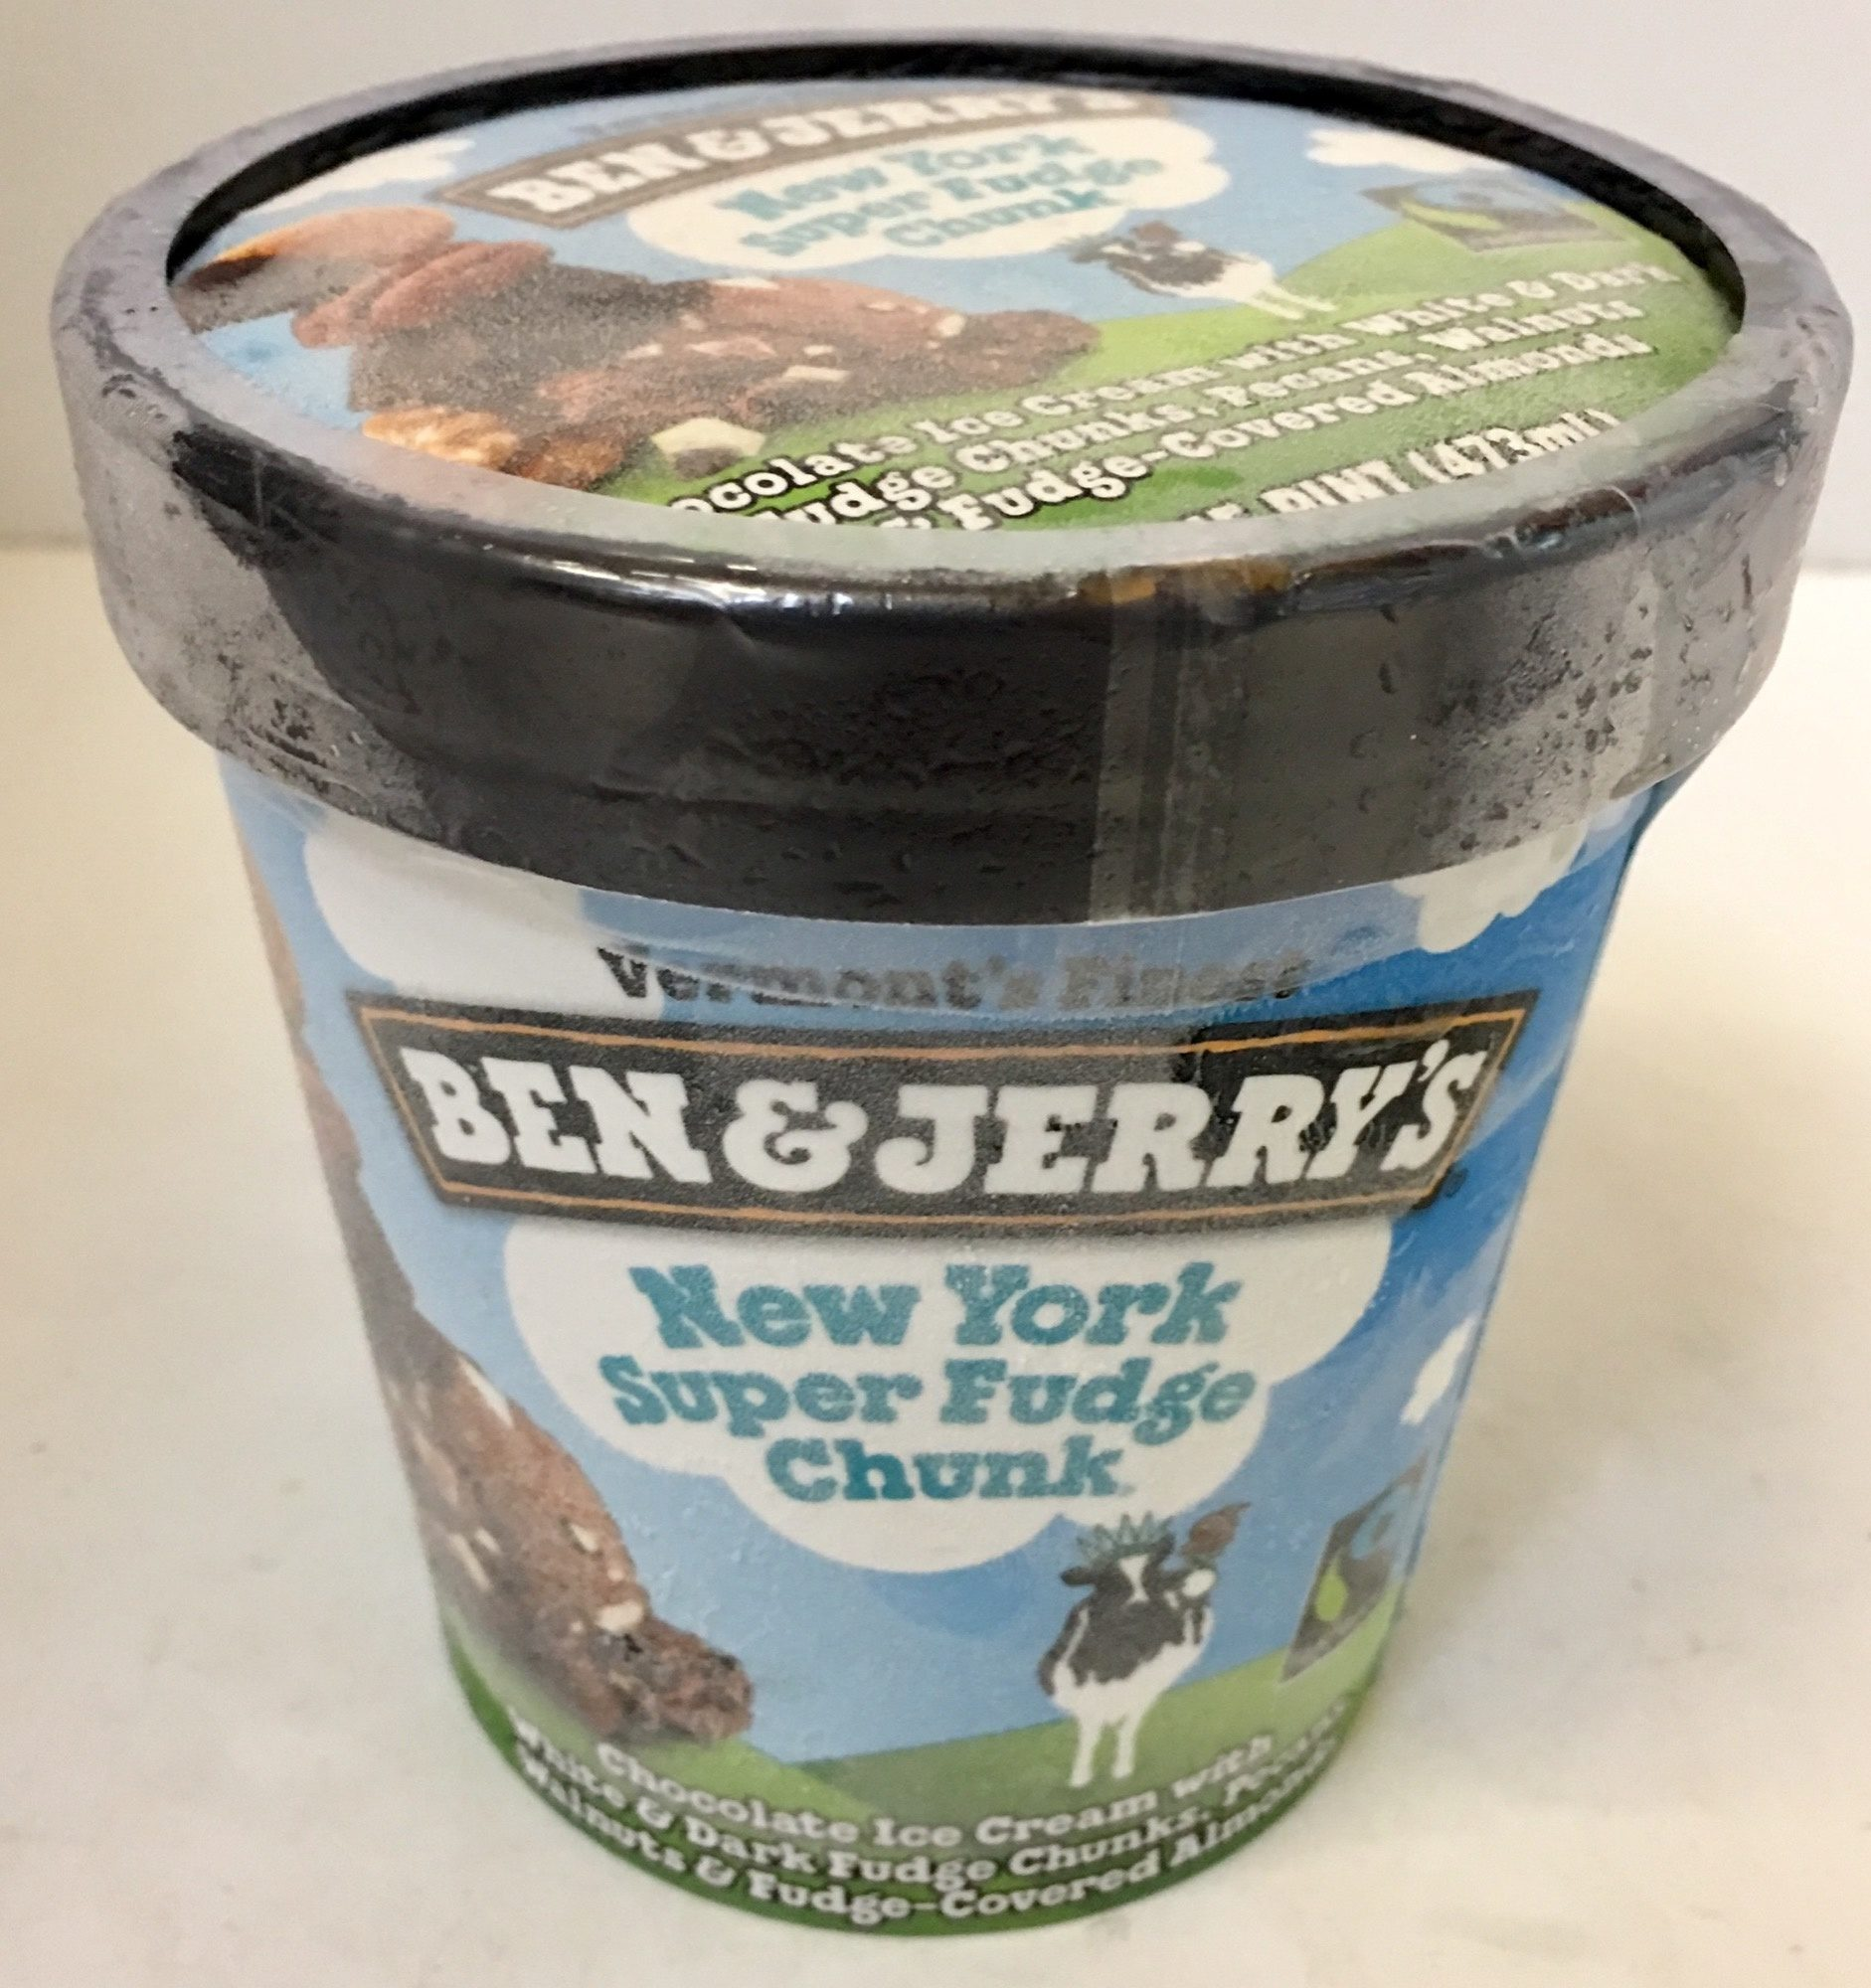 New york super fudge chunk chocolate ice cream with white & dark fudge chunks, pecans, walnuts & fudge-covered almonds, new york super fudge chunk - Product - en